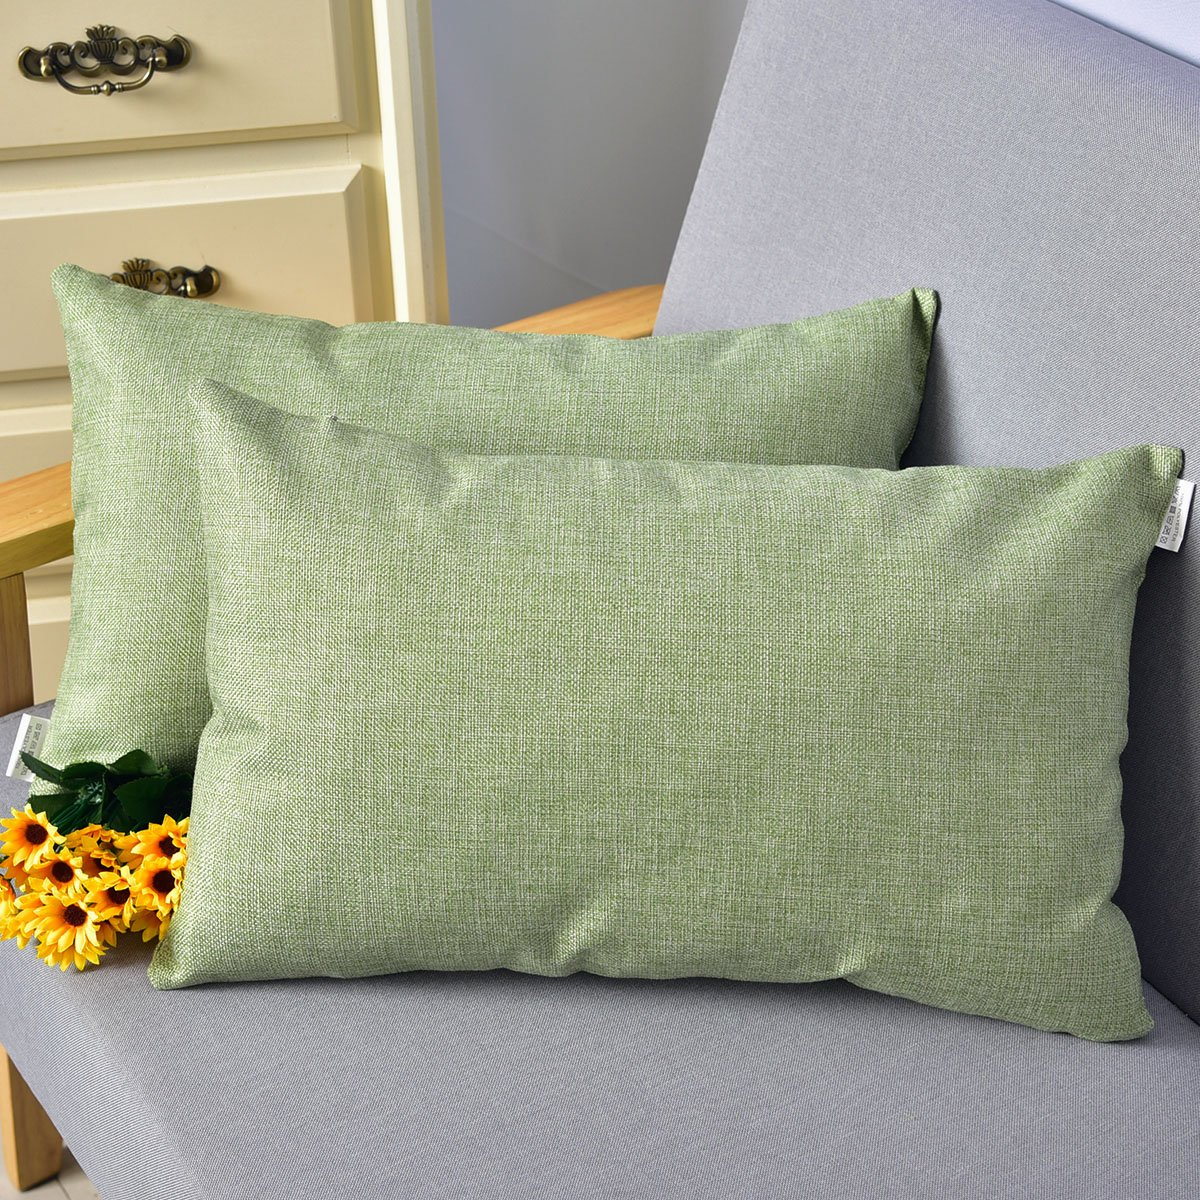 12 x 20 NWSLPC NATUS WEAVER Grey White Brown Black Stripe Pillow Cases Soft Linen Square Decorative Throw Cushion Cover Pillowcase with Hidden Zipper for Sofa